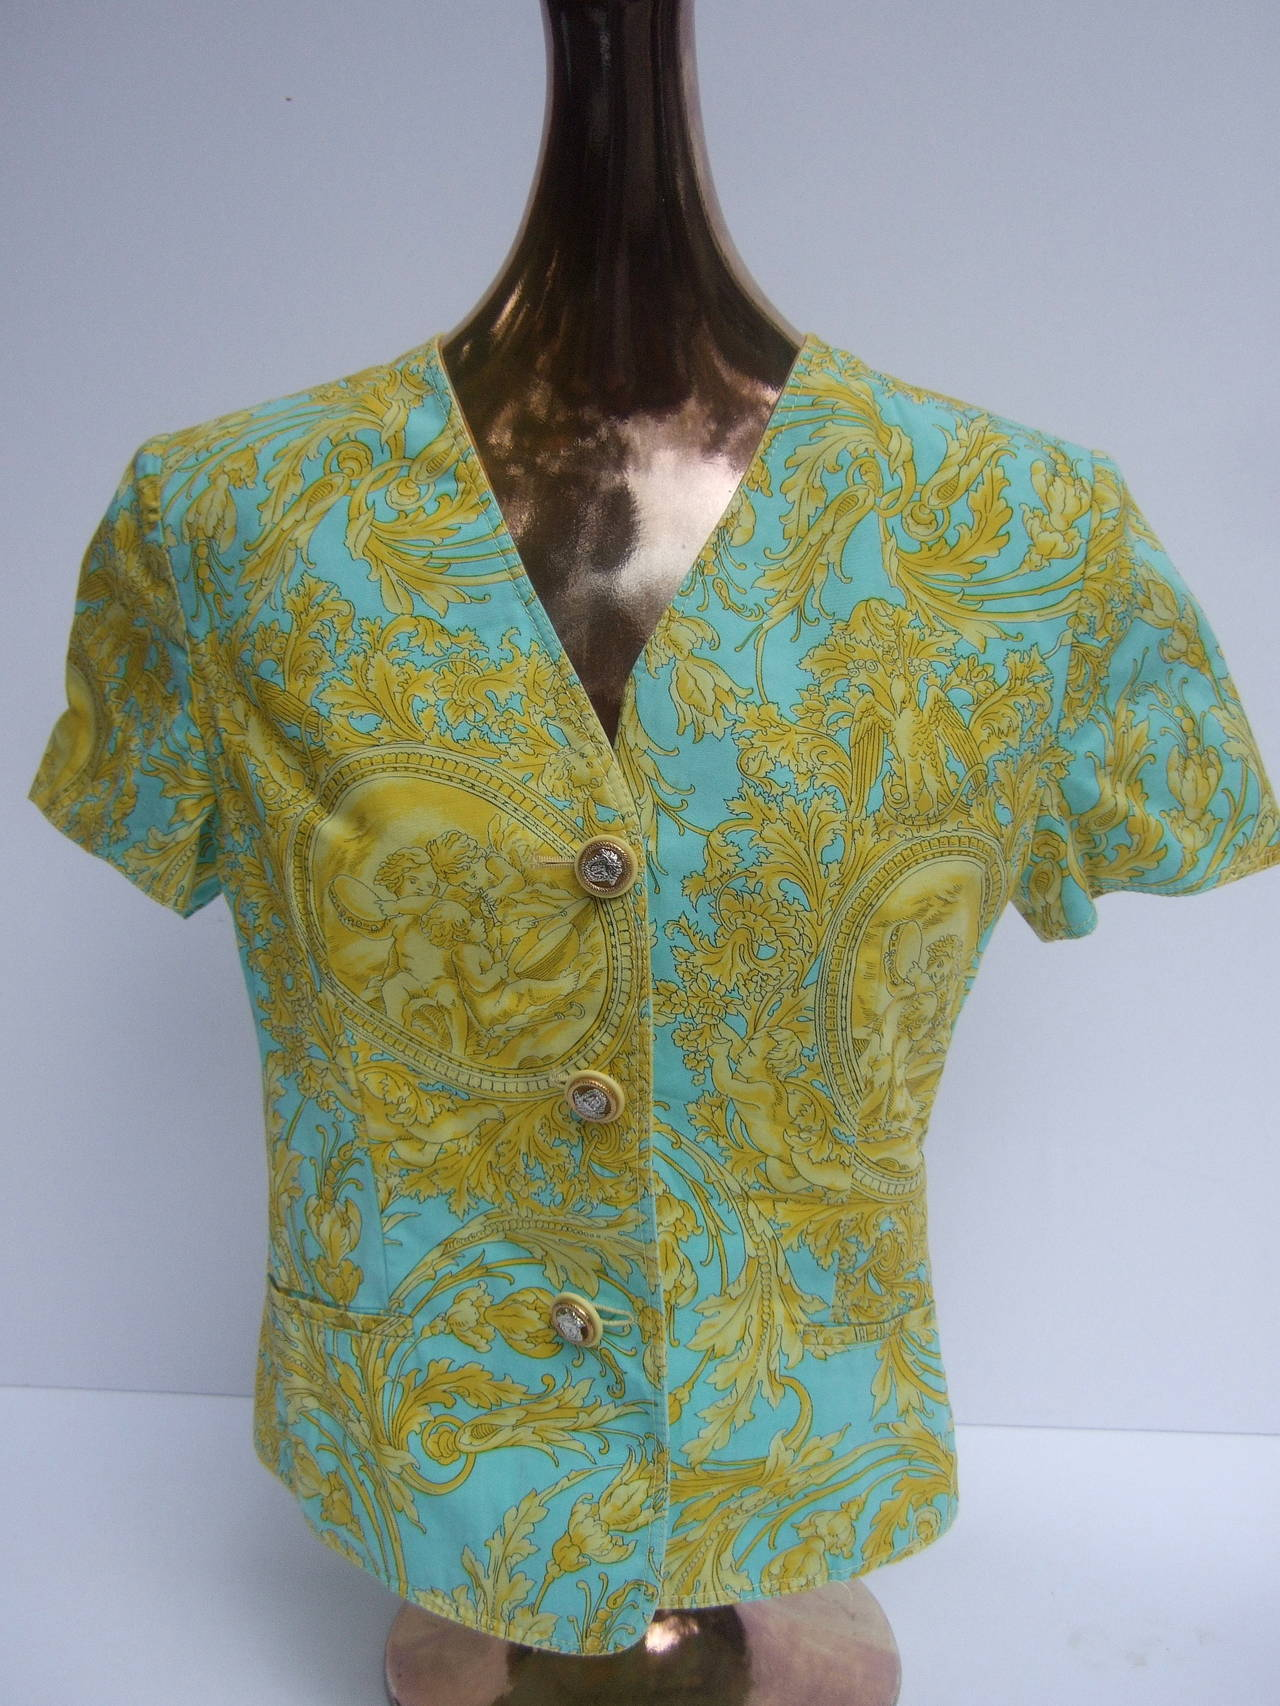 Versace Vibrant Print Medusa Button Cotton Jacket US Size 10 In Excellent Condition For Sale In Santa Barbara, CA